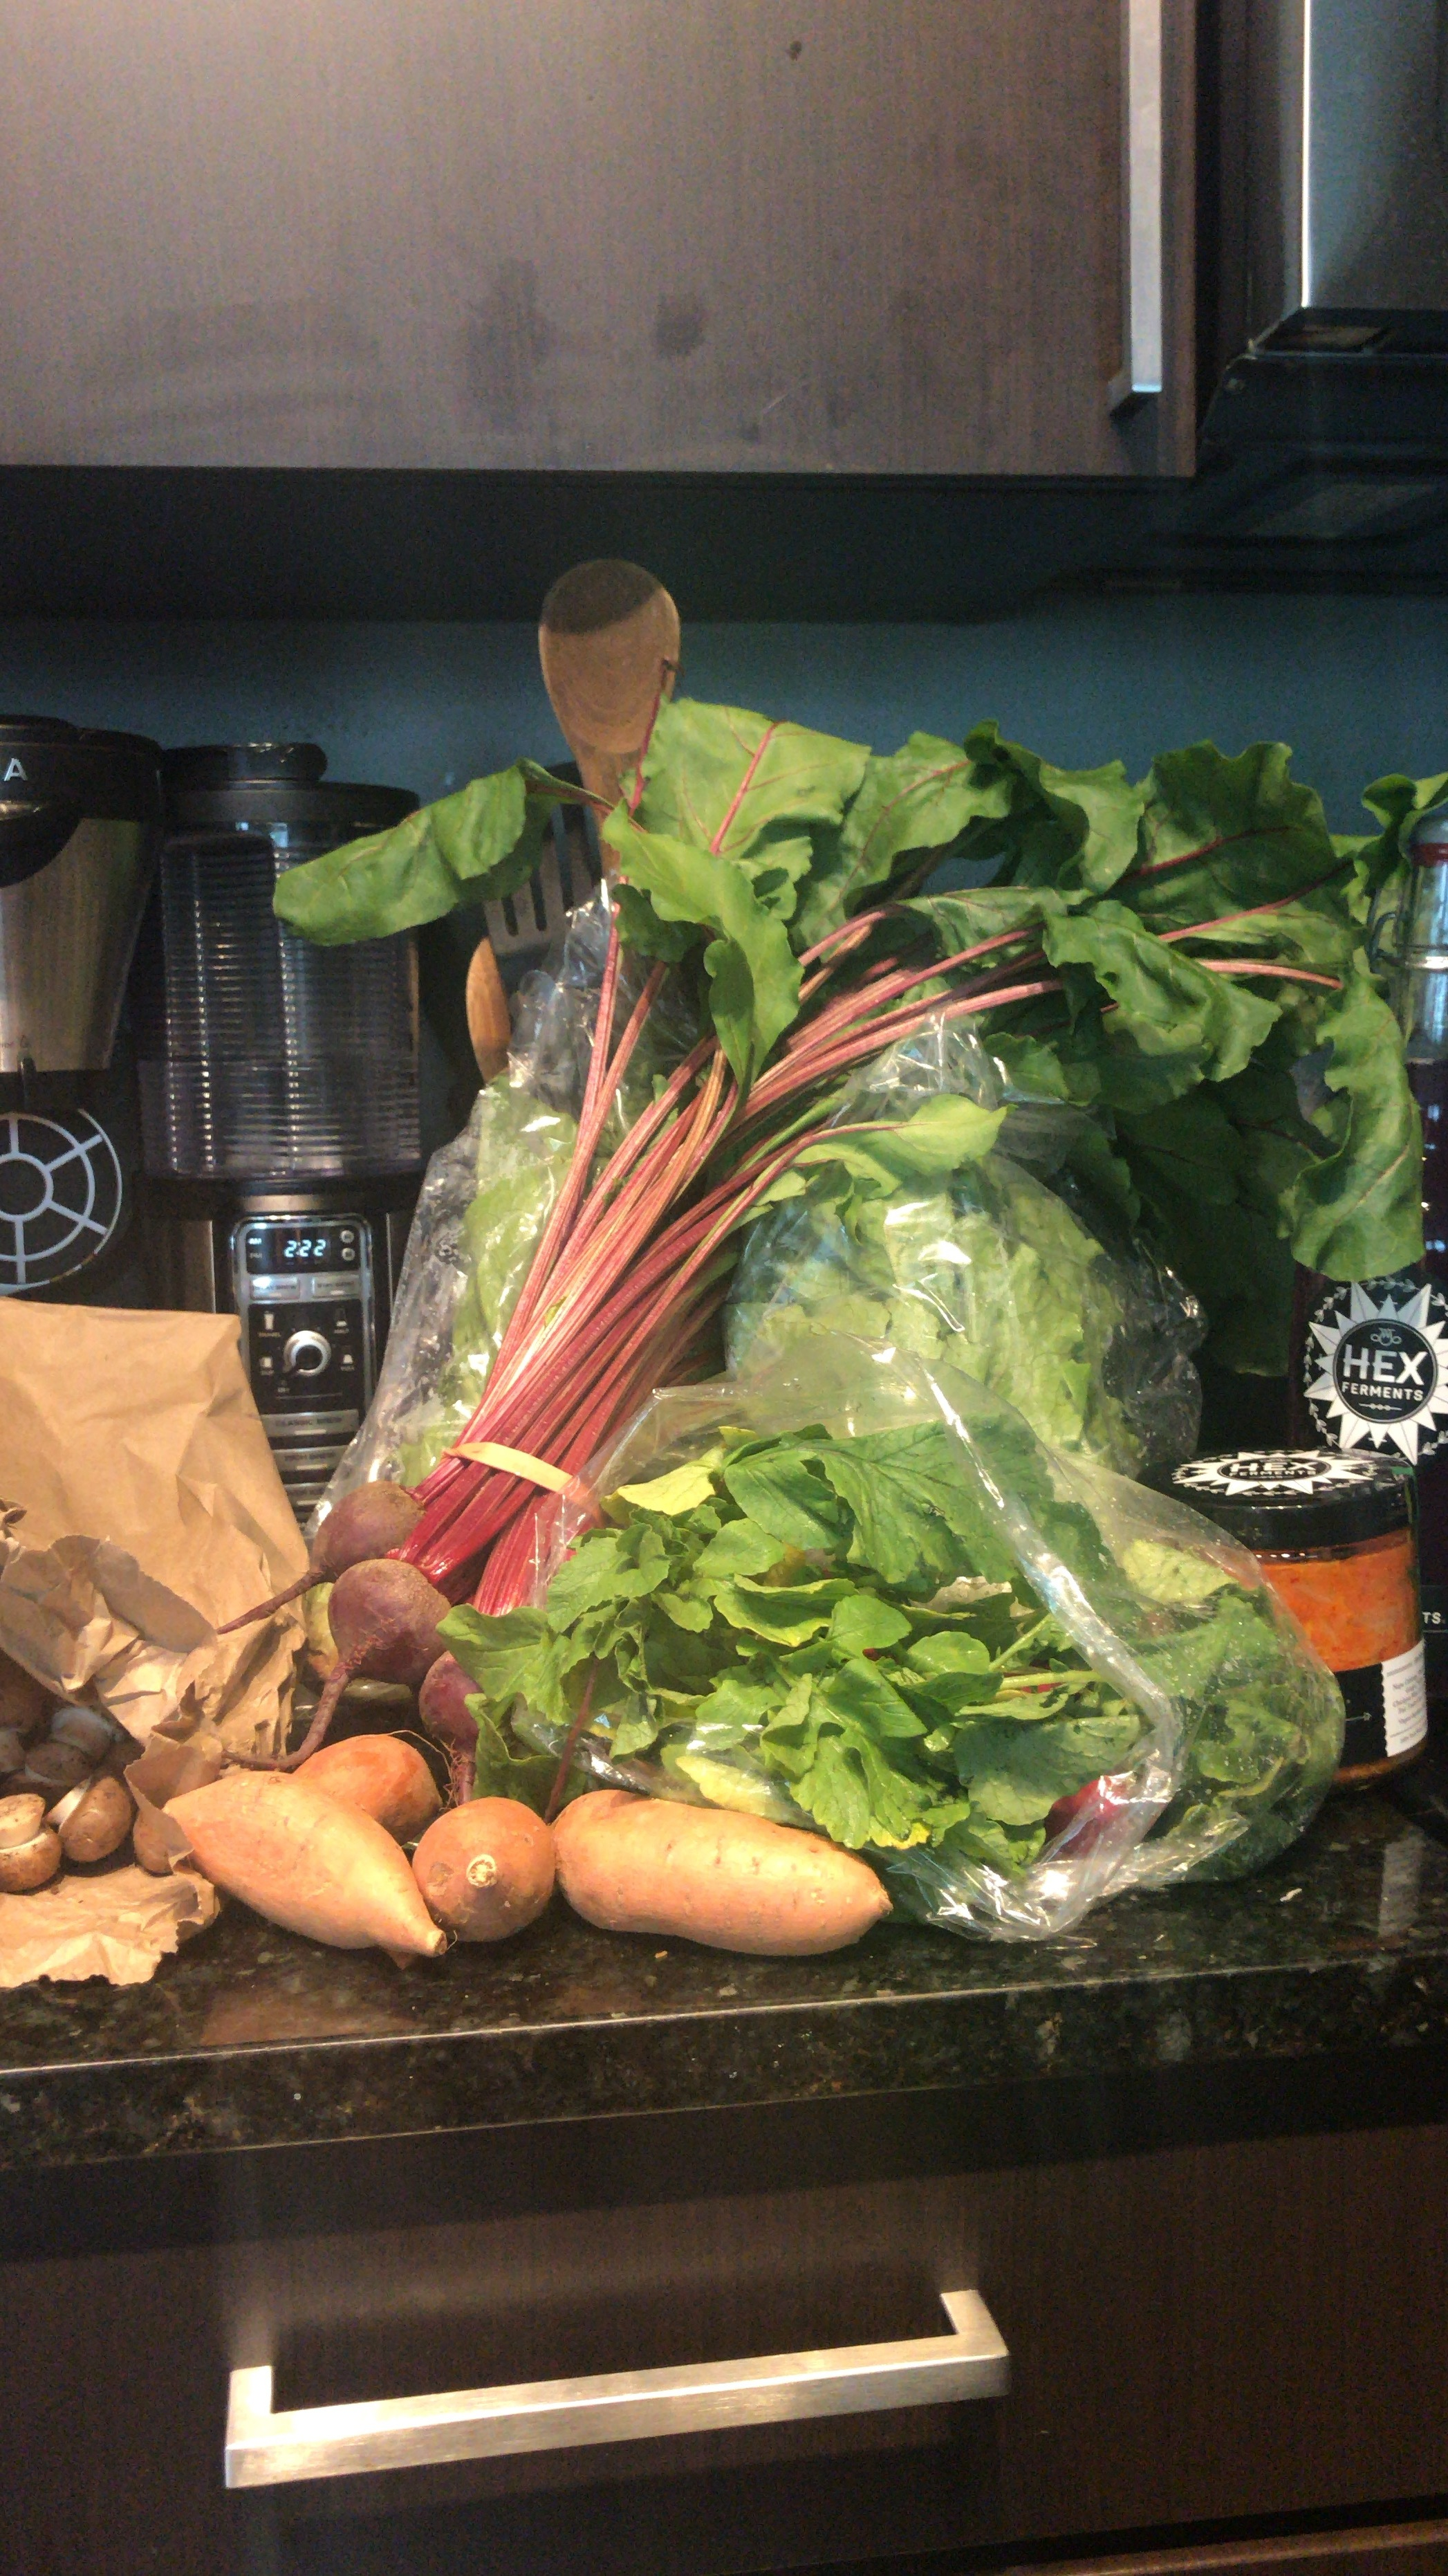 A recent farmers' market haul.